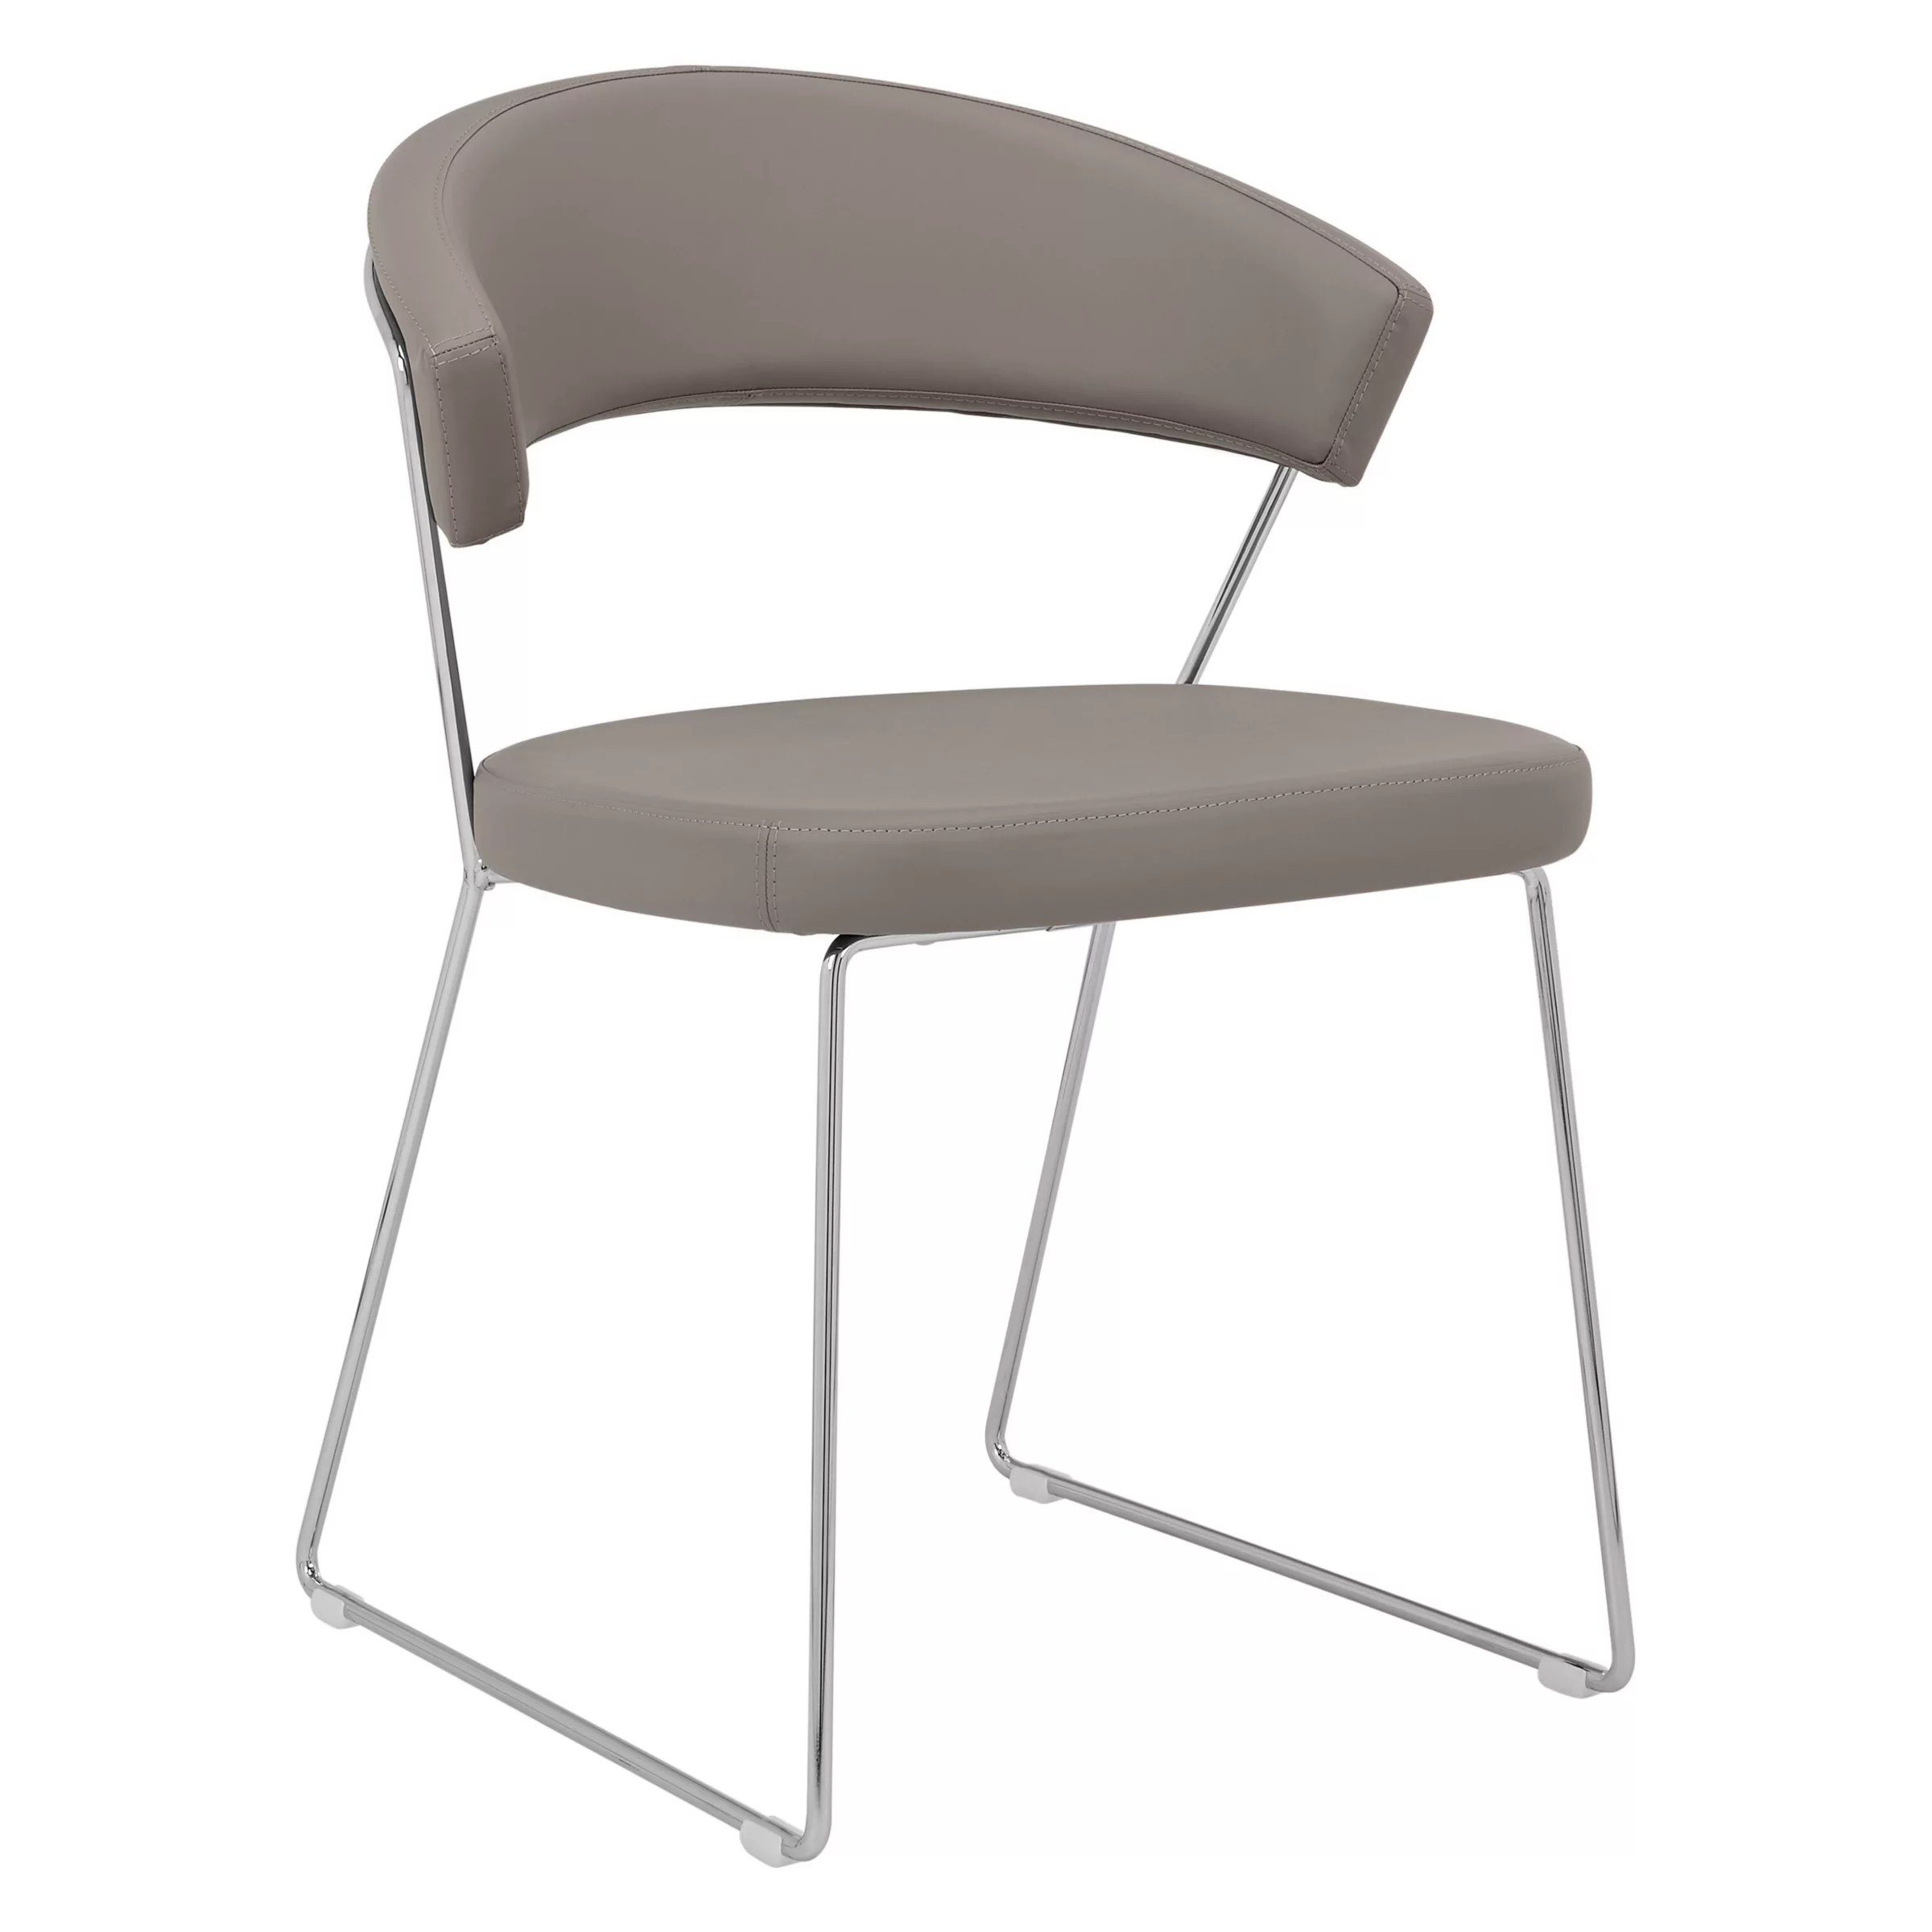 Calligaris Dining Chairs Connubia By Calligaris New York Dining Chair At John Lewis Partners